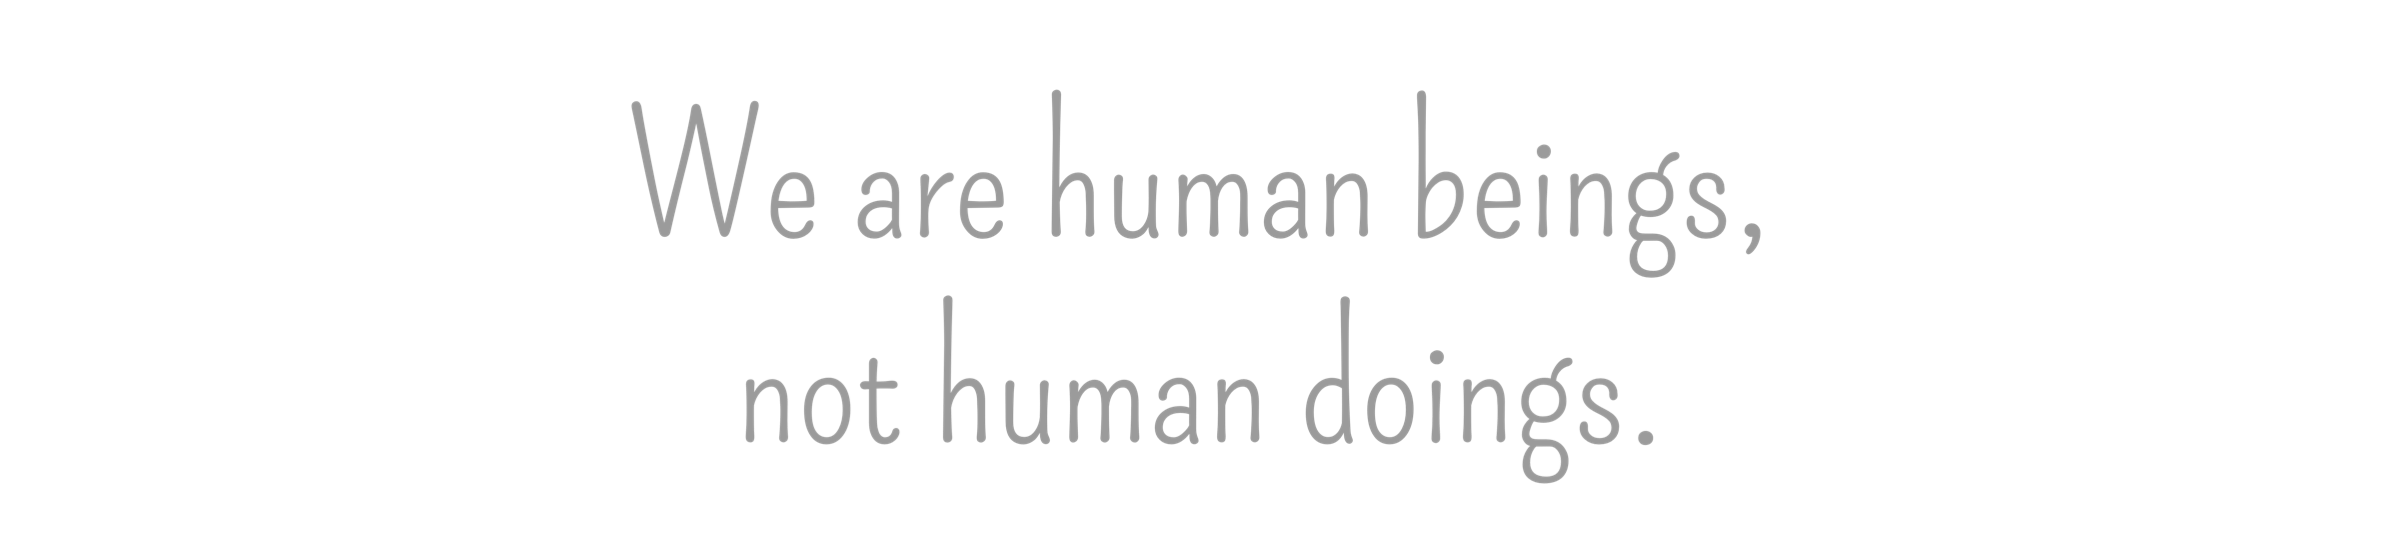 human-beings-not-doings.png